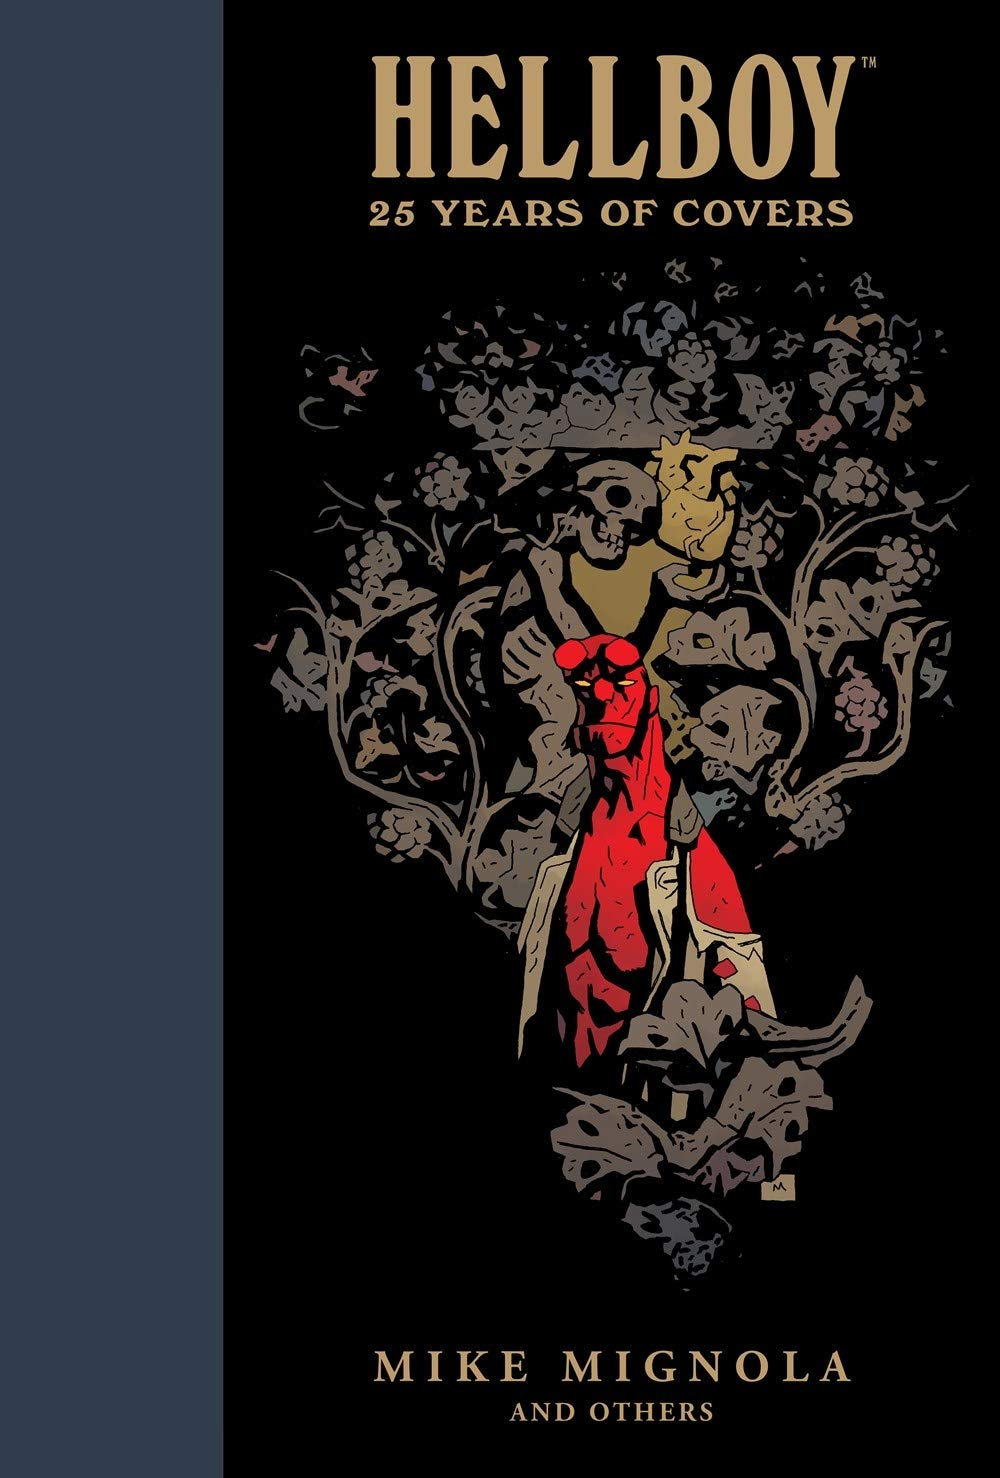 Image result for hellboy 25 years of covers